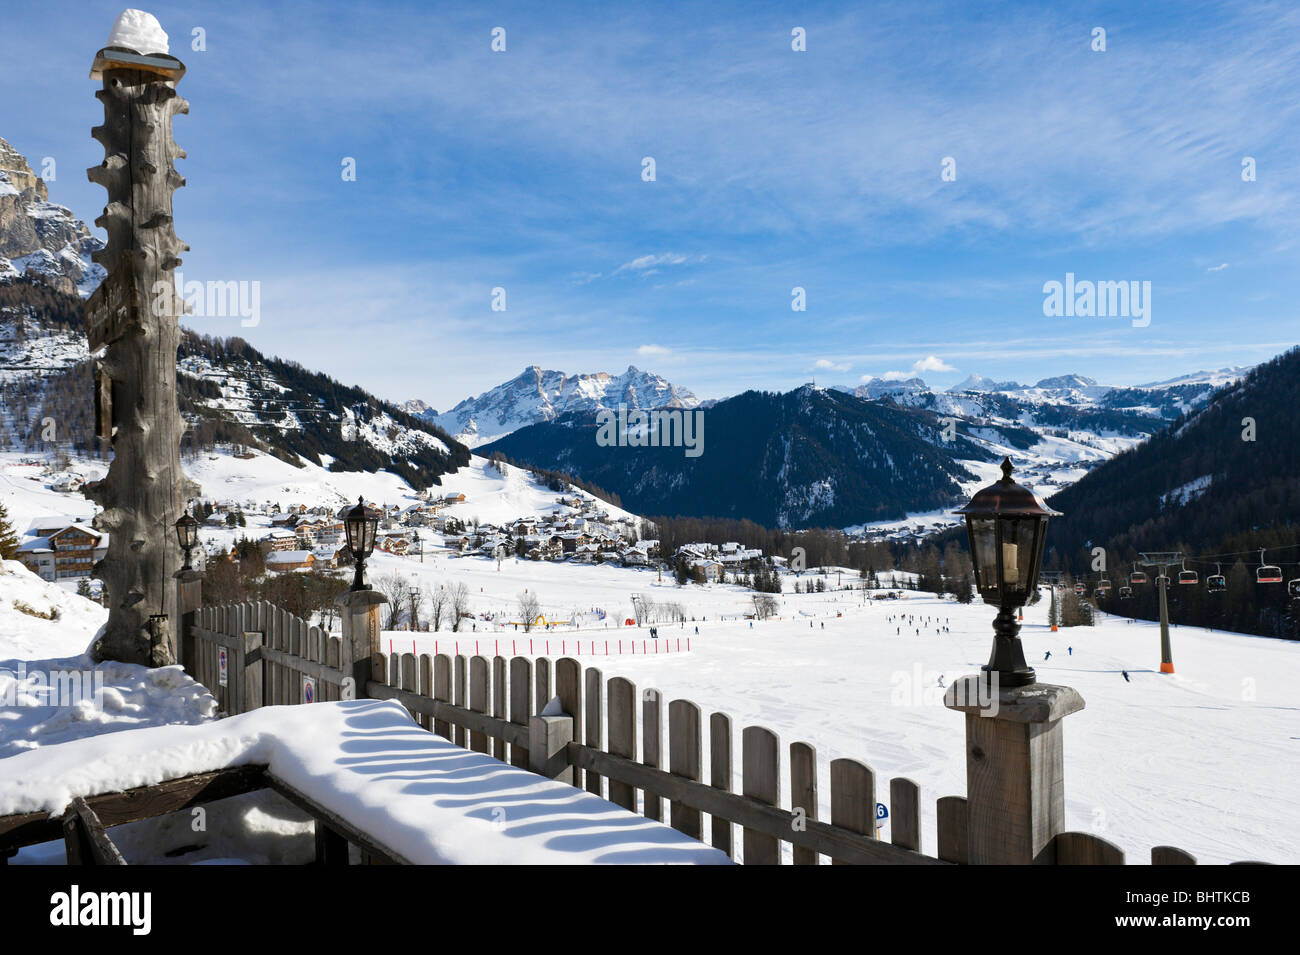 View over the resort of Colfosco with Corvara in the distance, Sella Ronda Ski Area, Alta Badia, Dolomites, Italy Stock Photo